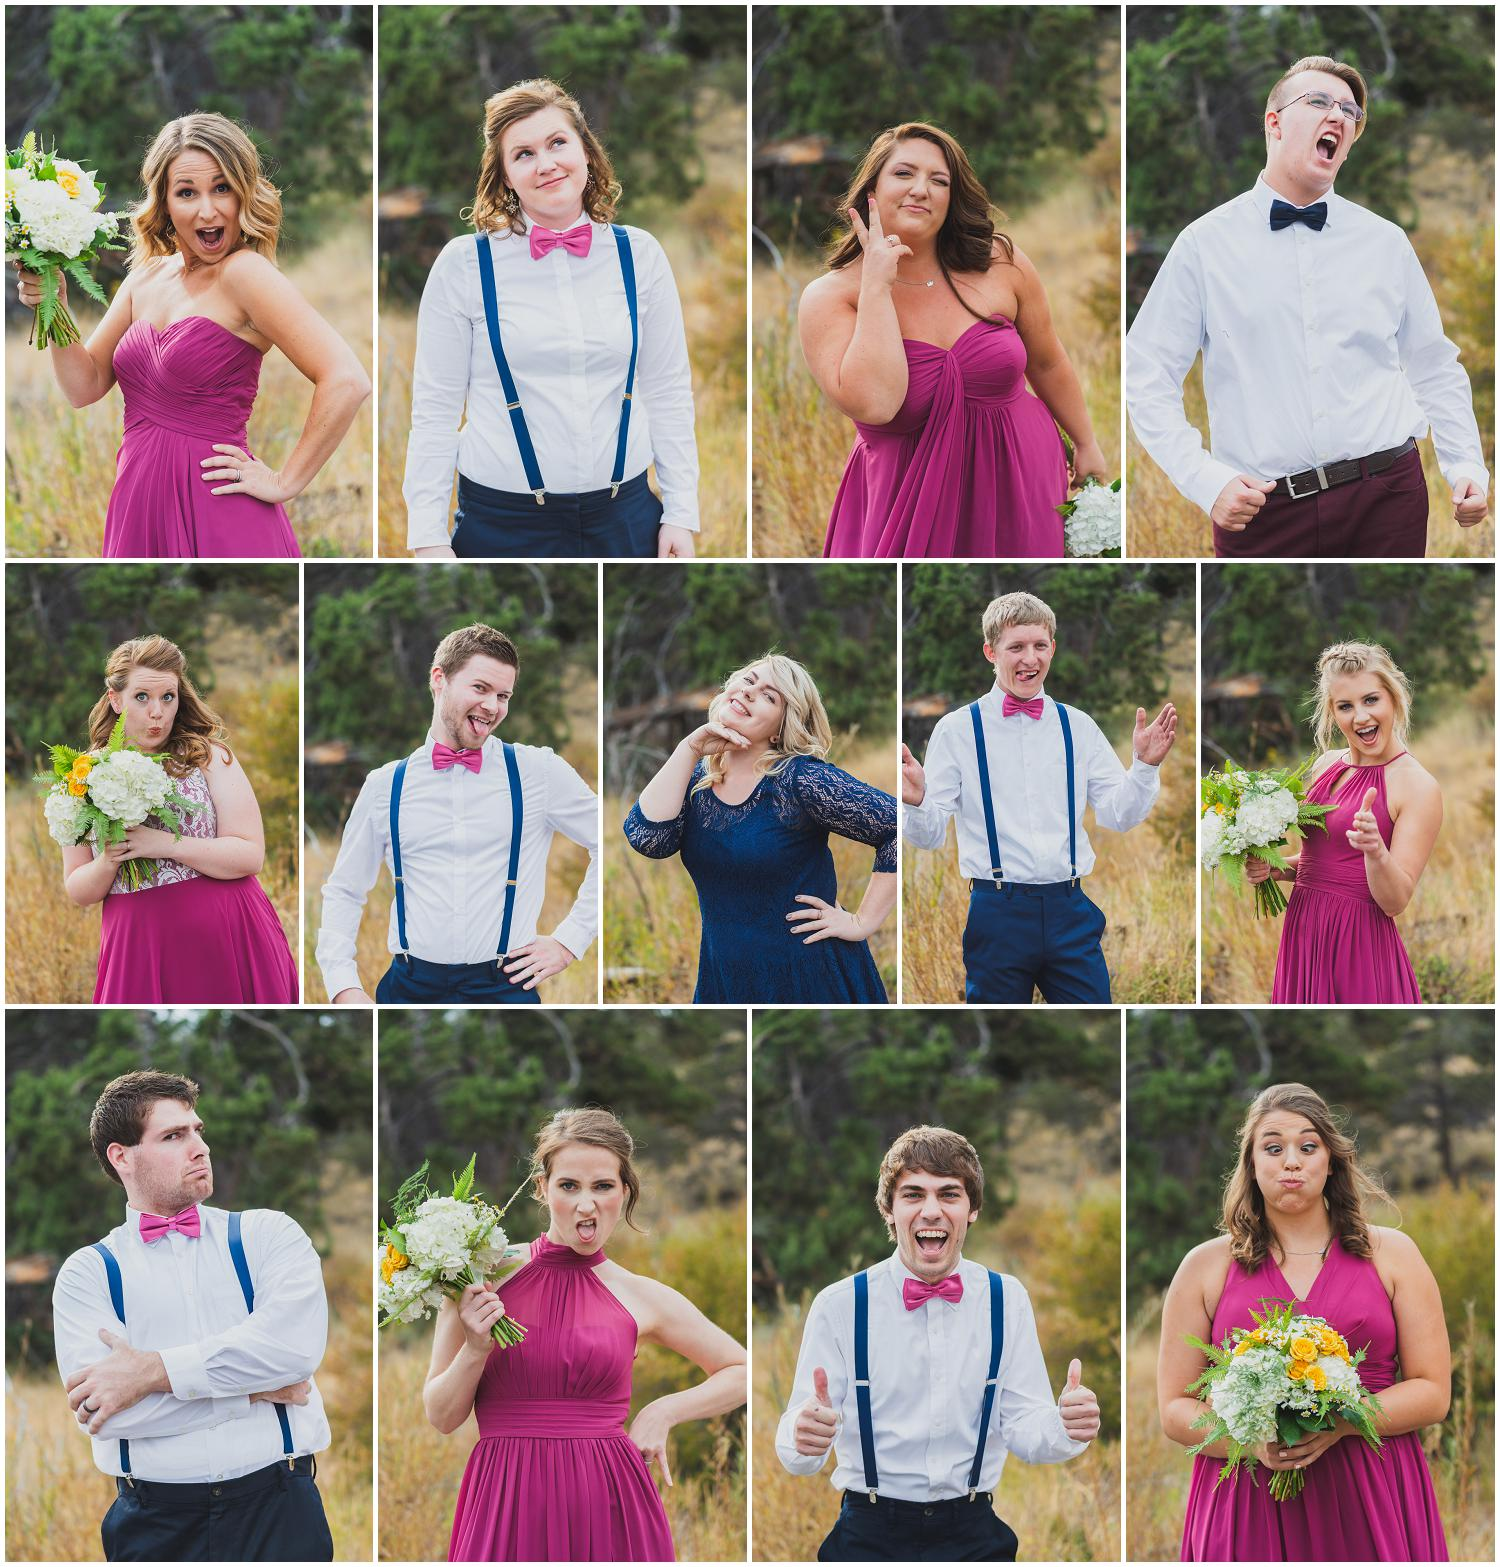 mixed gender wedding party each making a silly face to lighten the mood